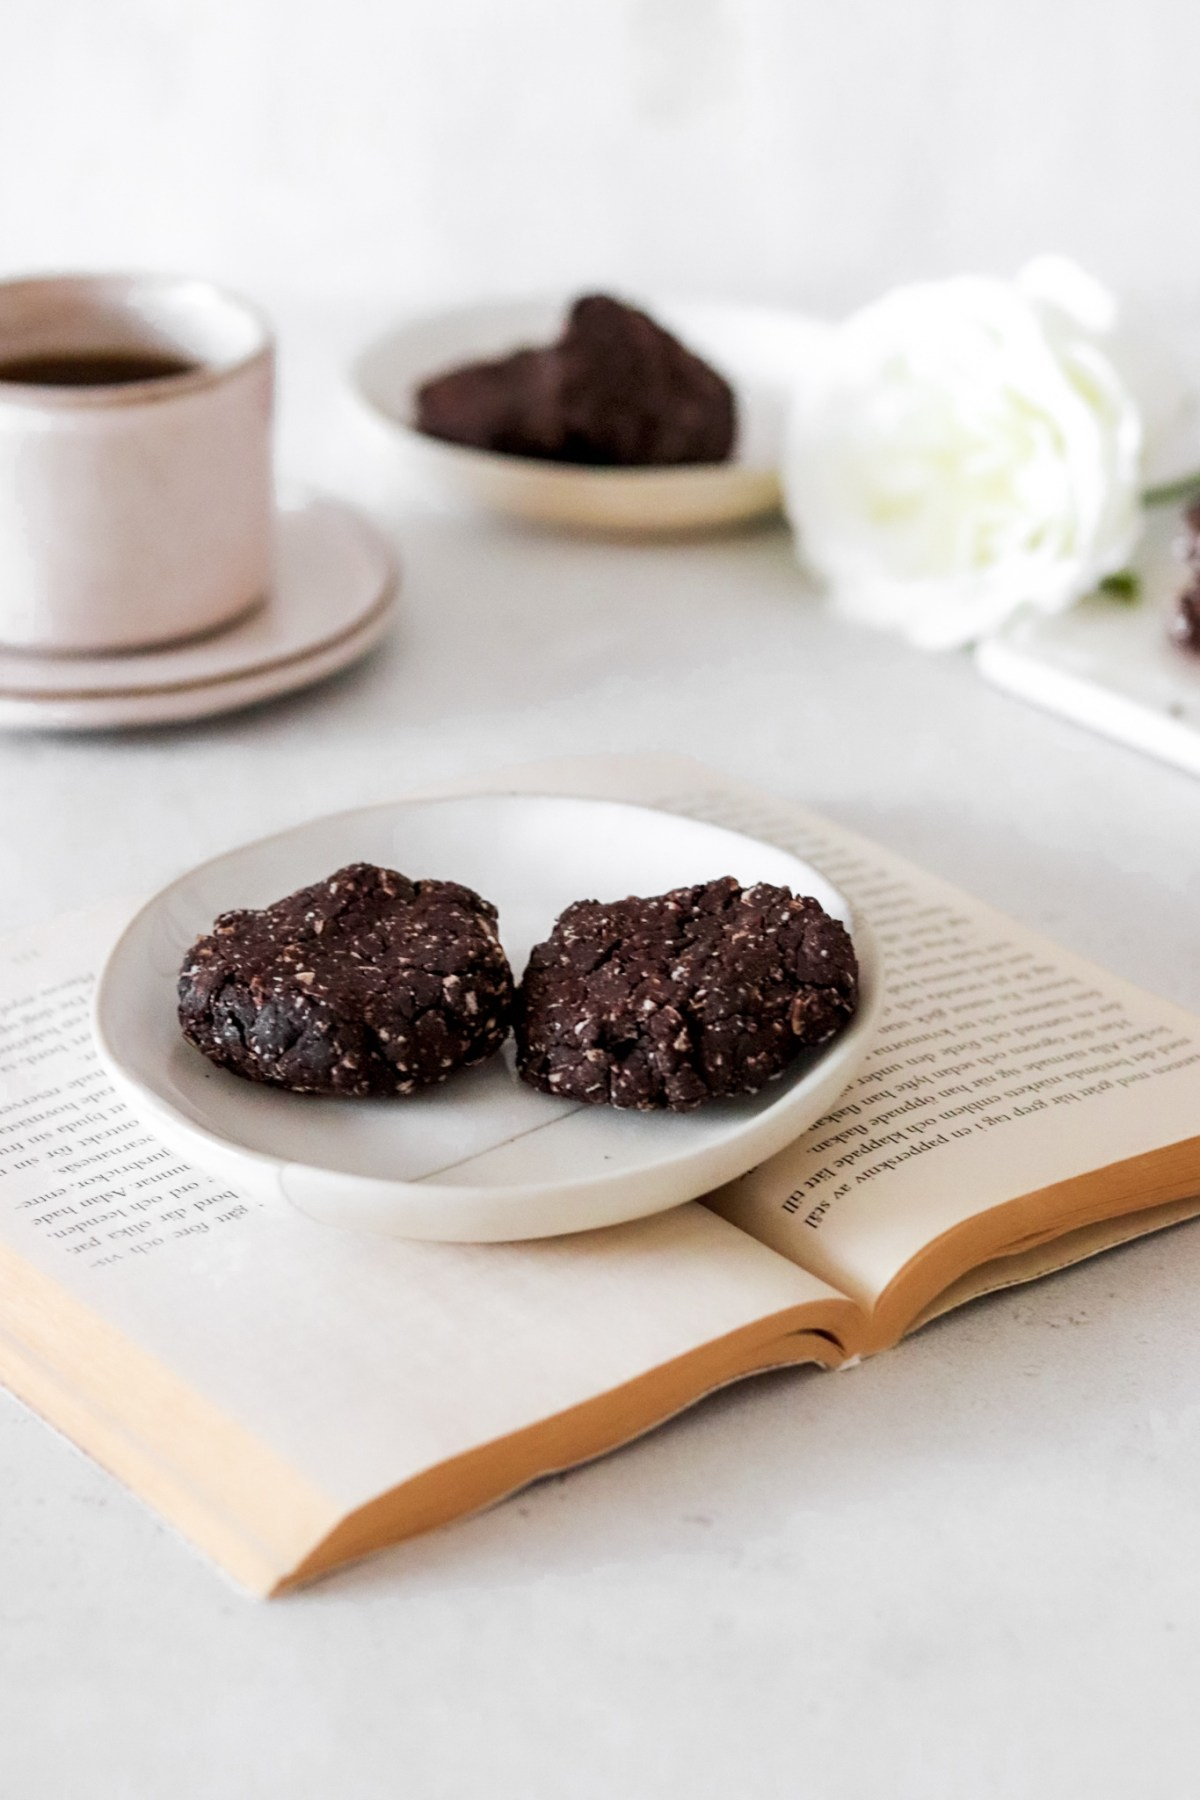 Chocolate & Tahini Cookies (Gluten, Dairy, Sugar & Oil Free) On a Plate